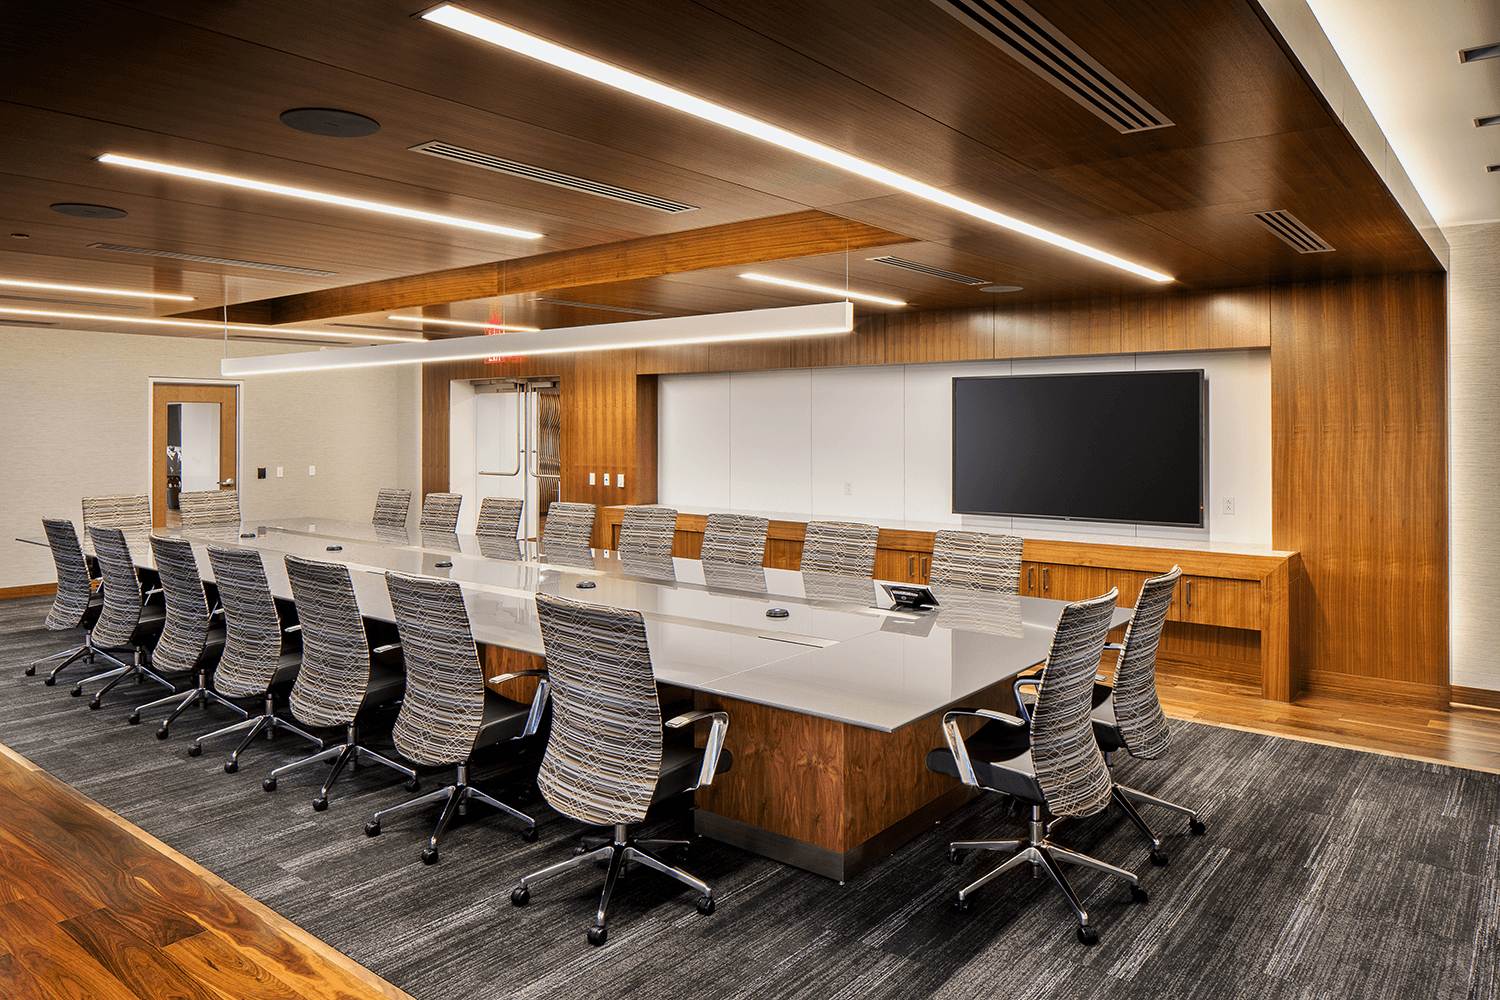 conference room with gray striped chairs and carpet, and wood accent features